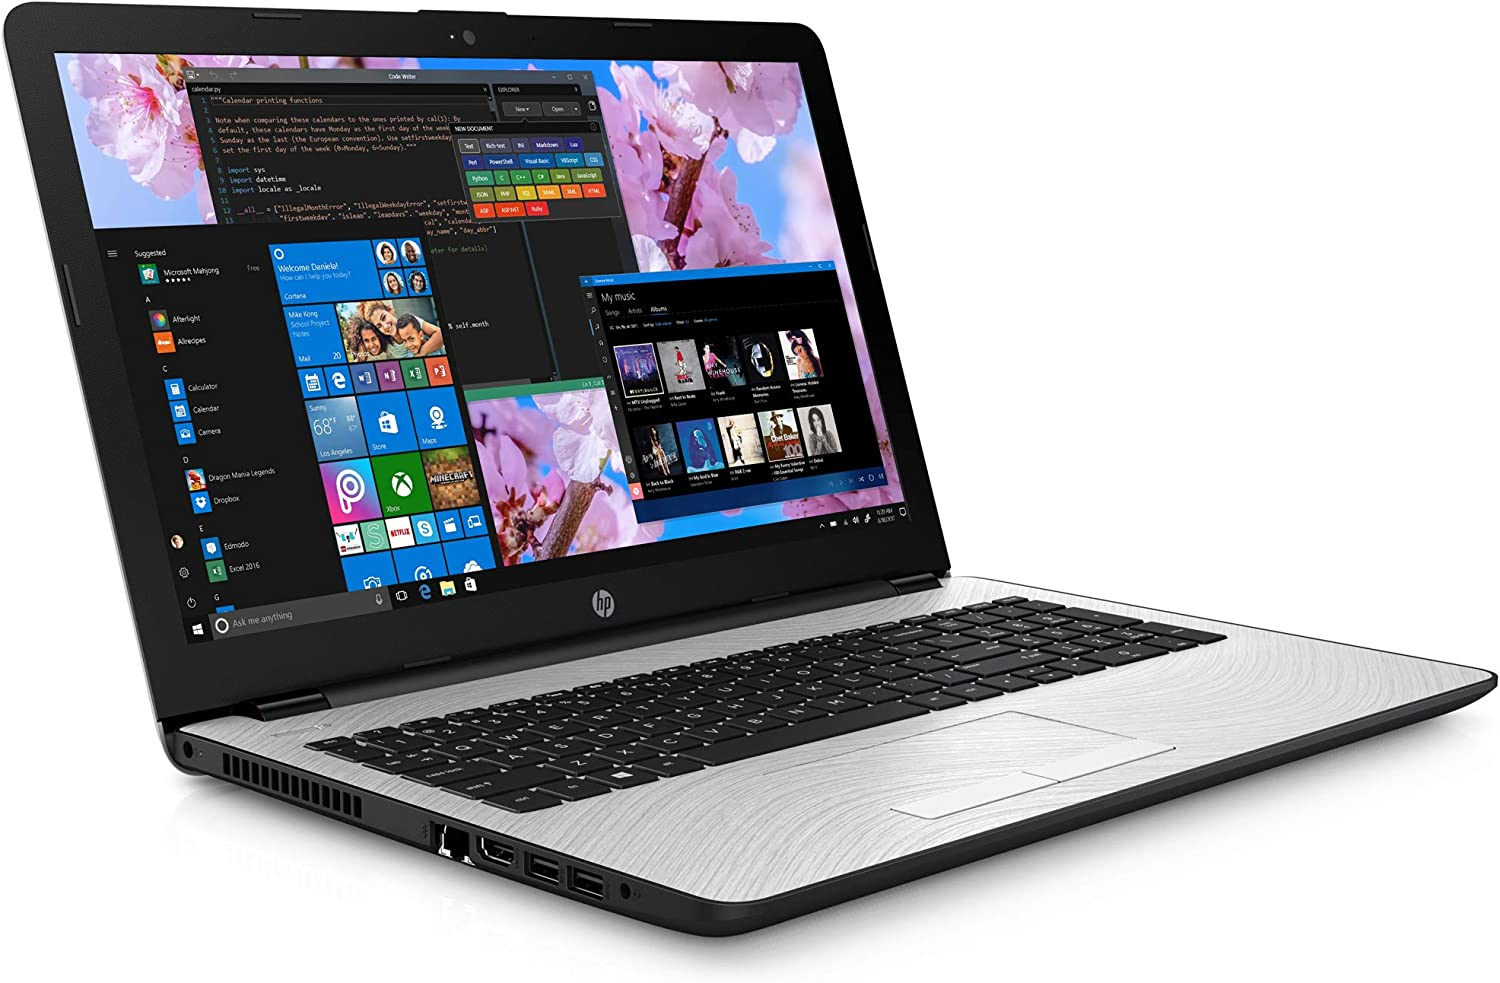 "HP 15 Notebook, 15.6"" SVA BrightView HD, Intel Dual-Core i3-7100U 2.4GHz, 4GB RAM, 256GB SSD, HDMI, Card Reader, Wi-Fi, Bluetooth, Windows 10 Pro"